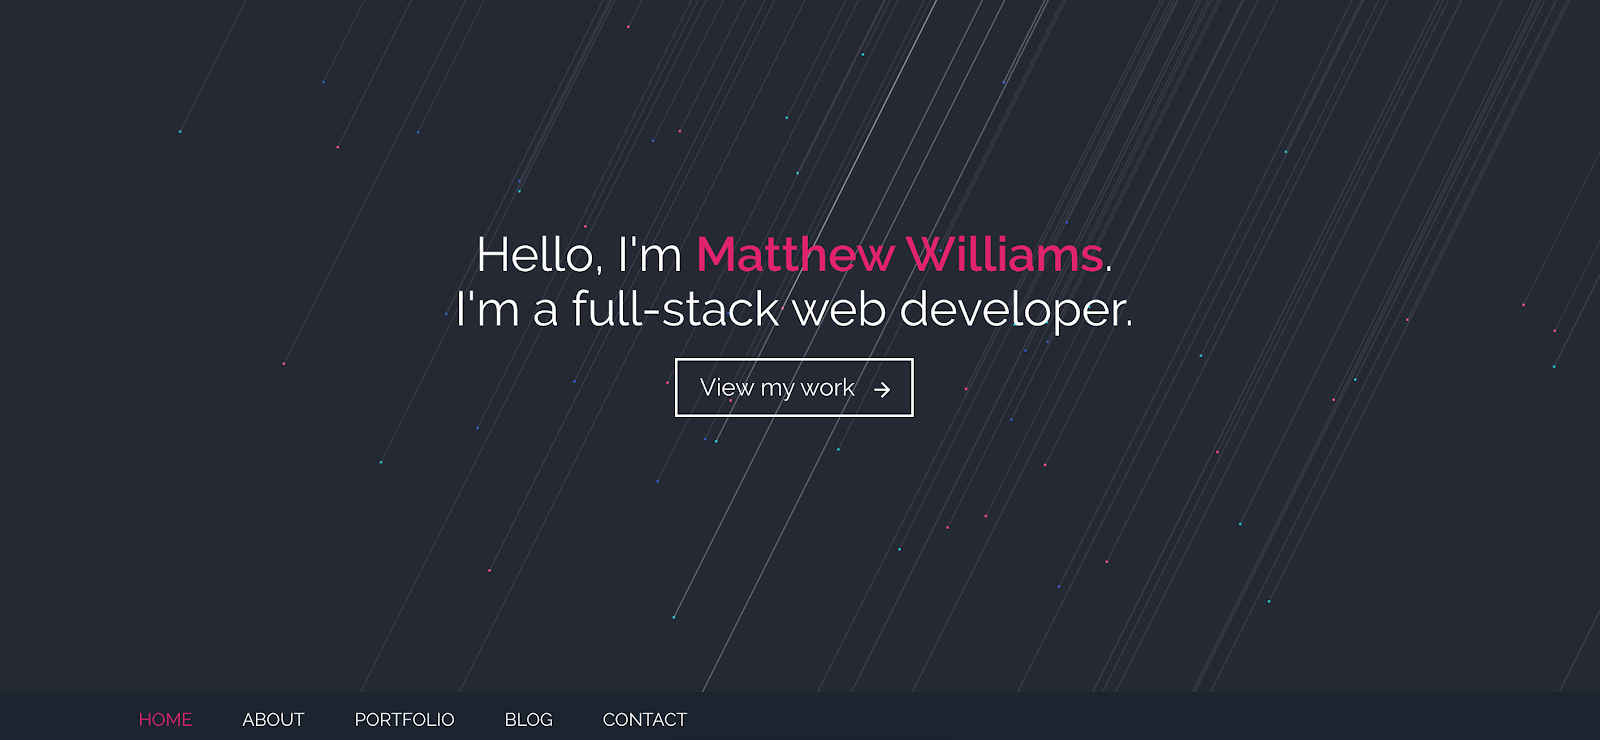 Web Developer Portfolio of Matthew Williams